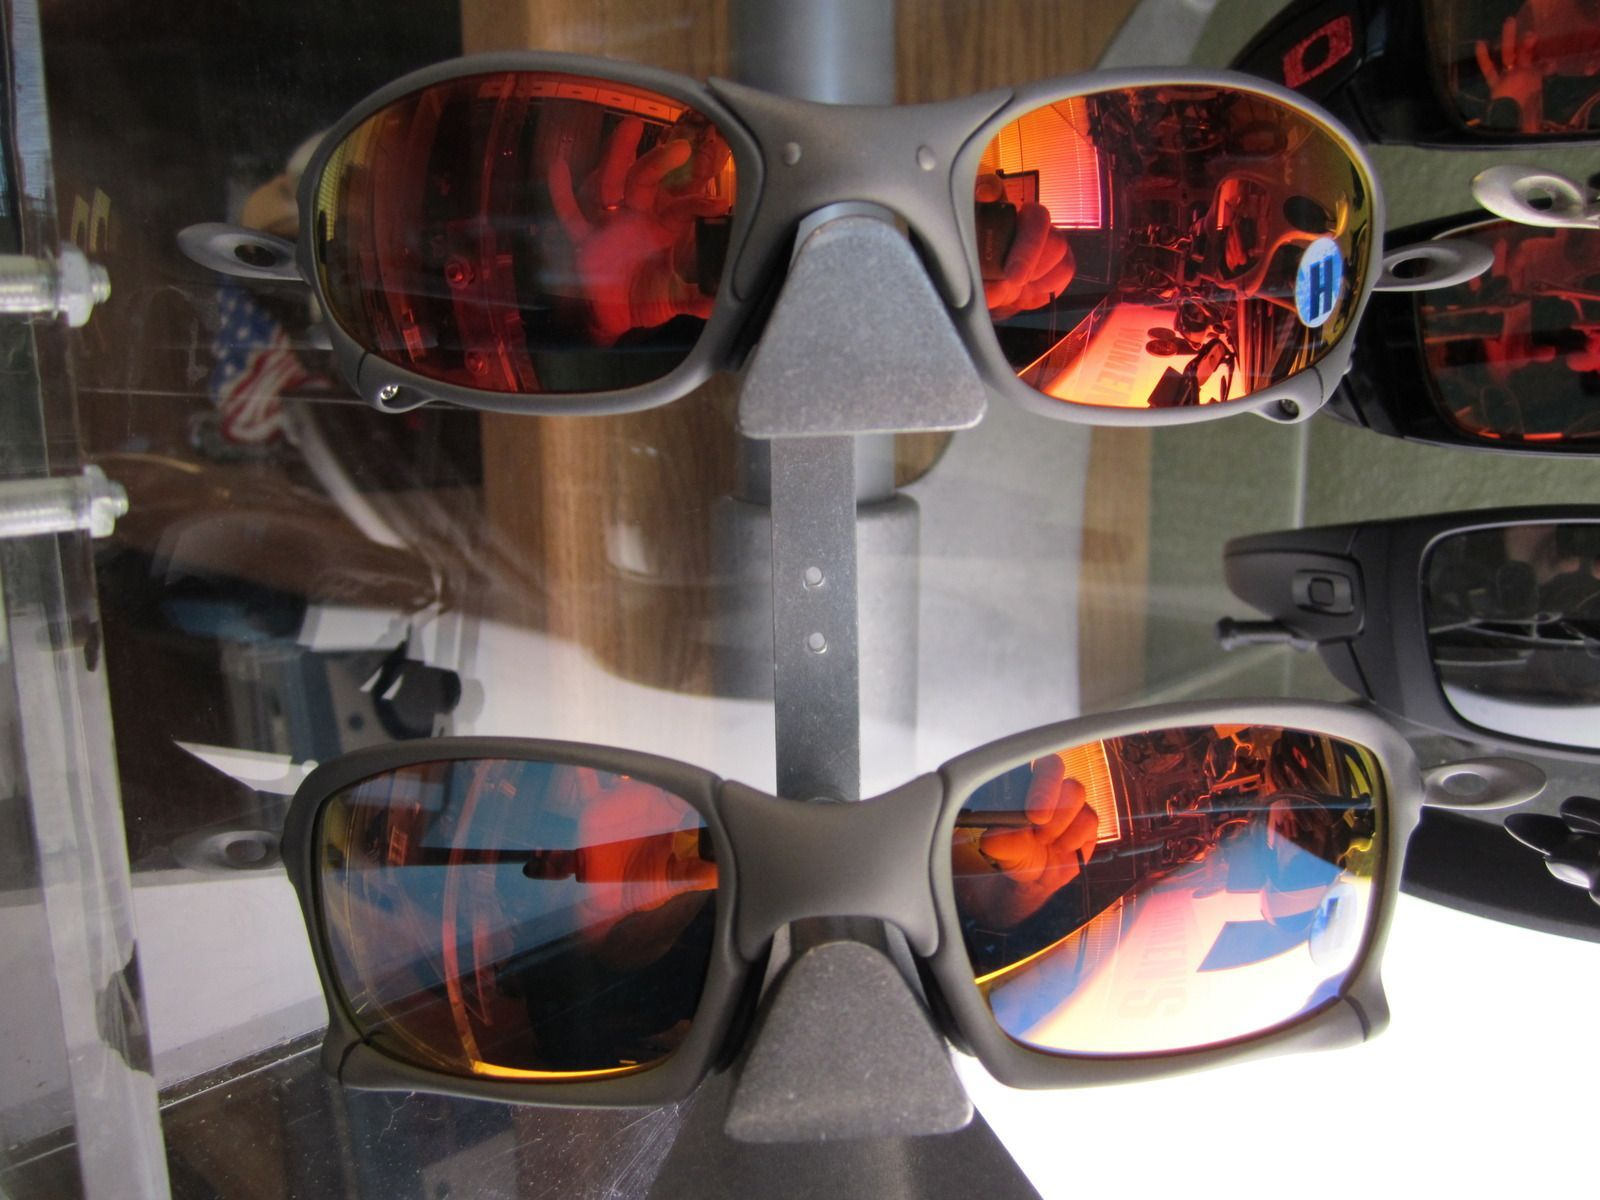 New Arrivals To The Metal Zone - IMG_0800.JPG